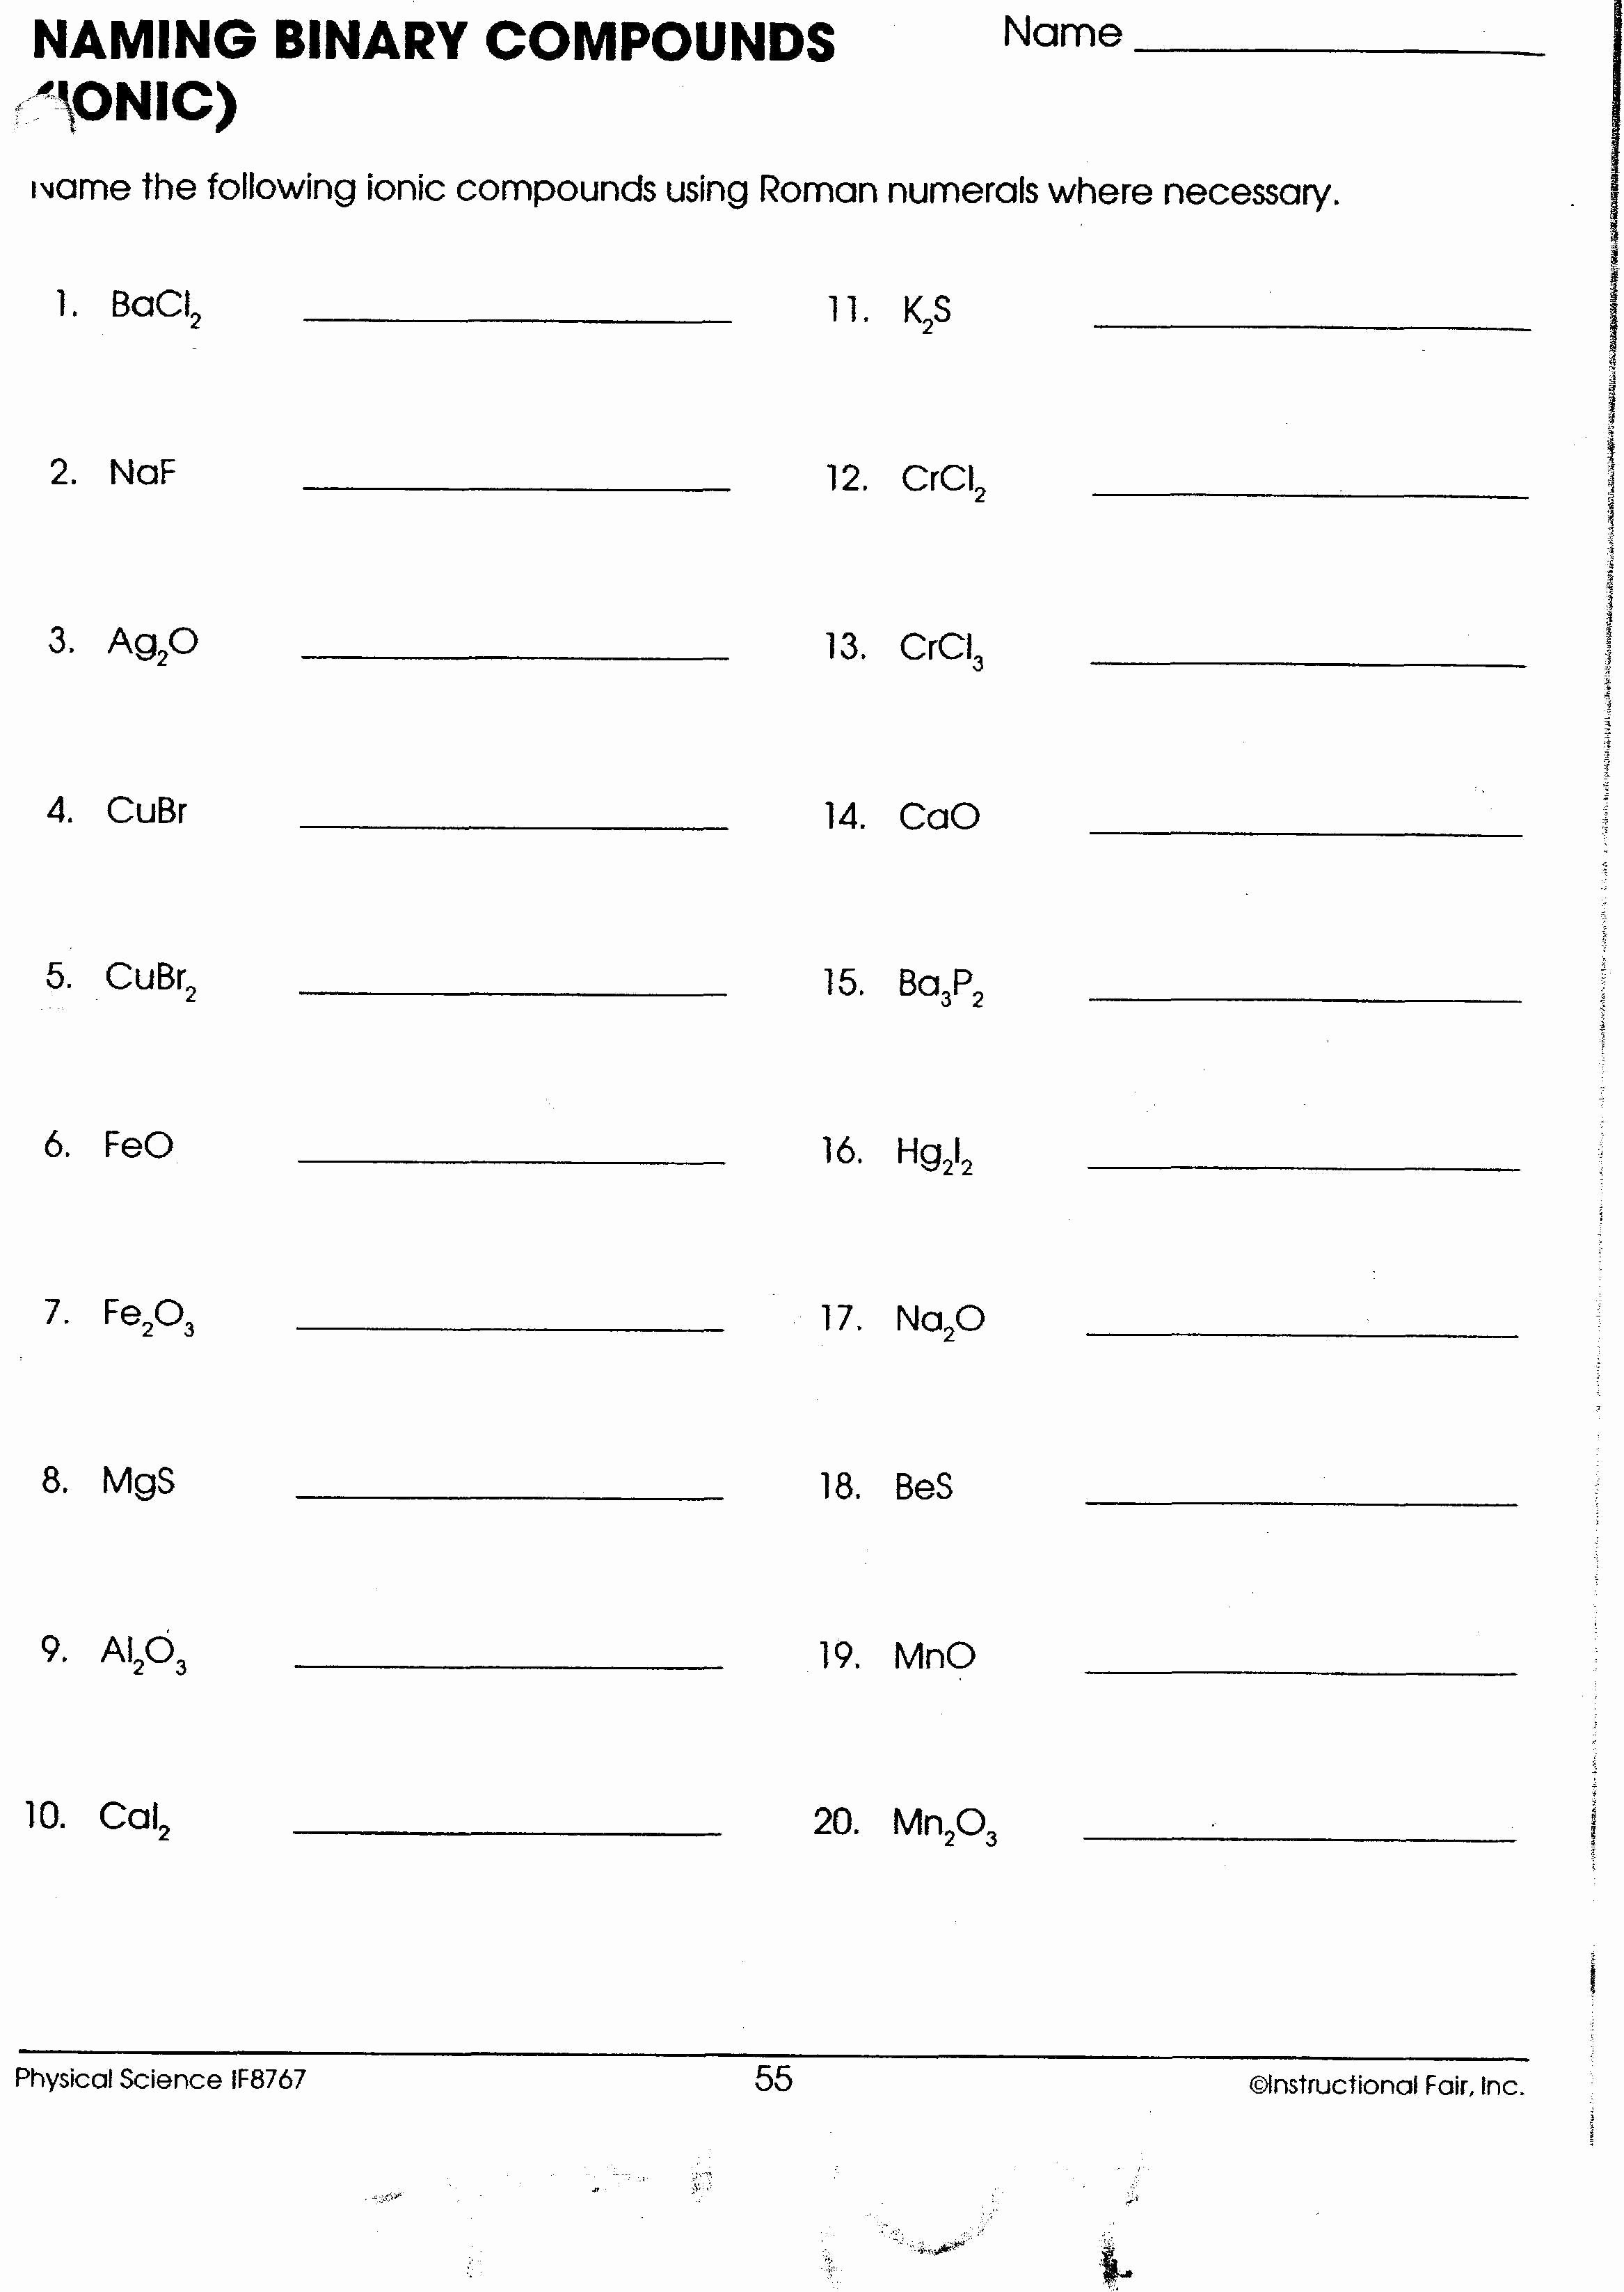 50 Naming Chemical Compounds Worksheet Answers